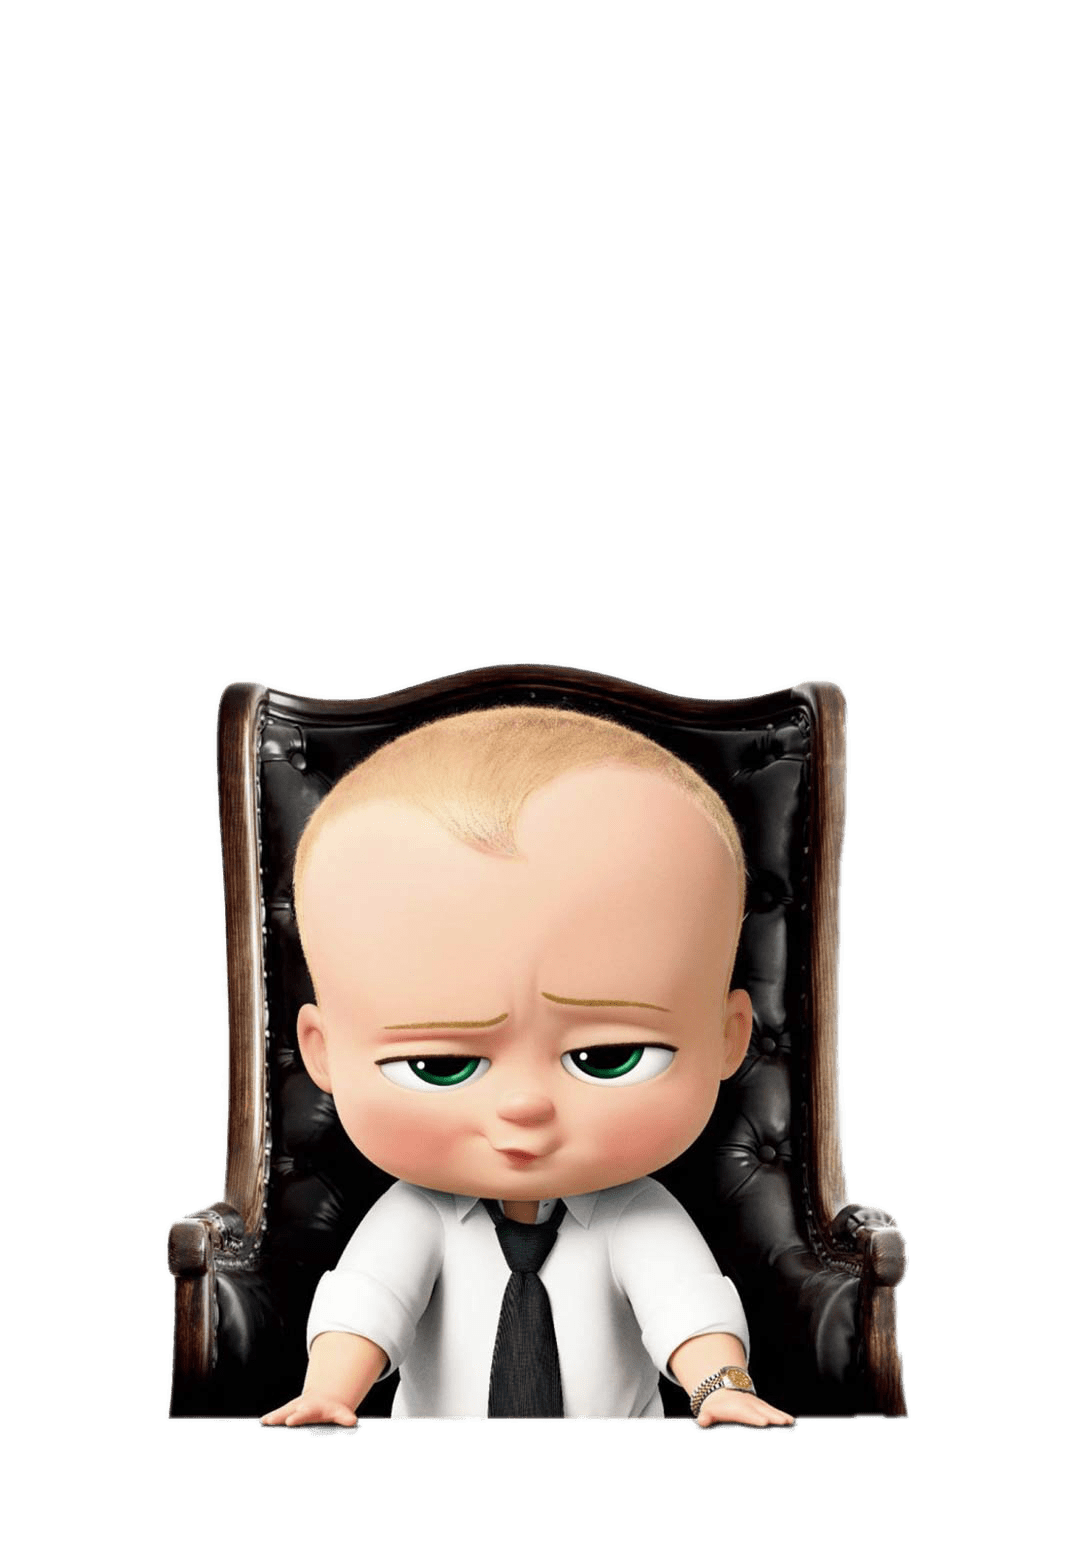 Boss Baby In Desk Chair Transparent Png Stickpng